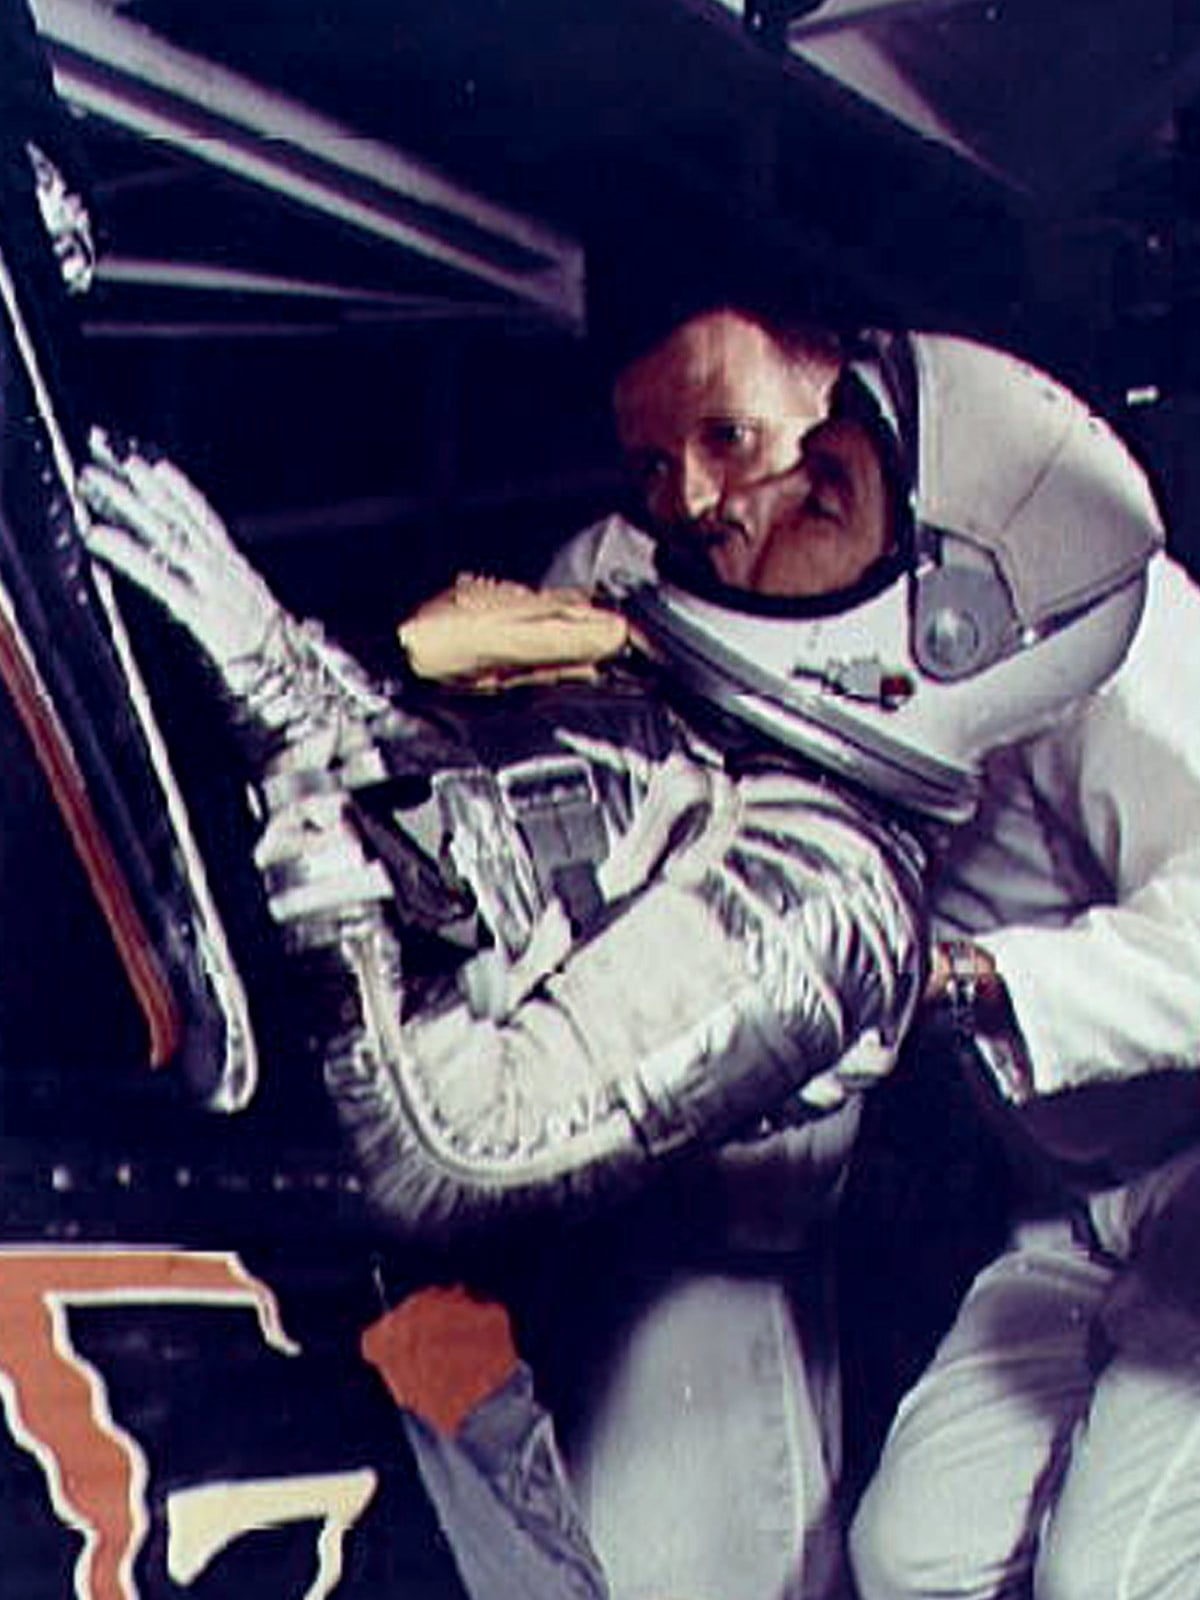 Astronaut Wally Schirra in the mercury mission in 1962